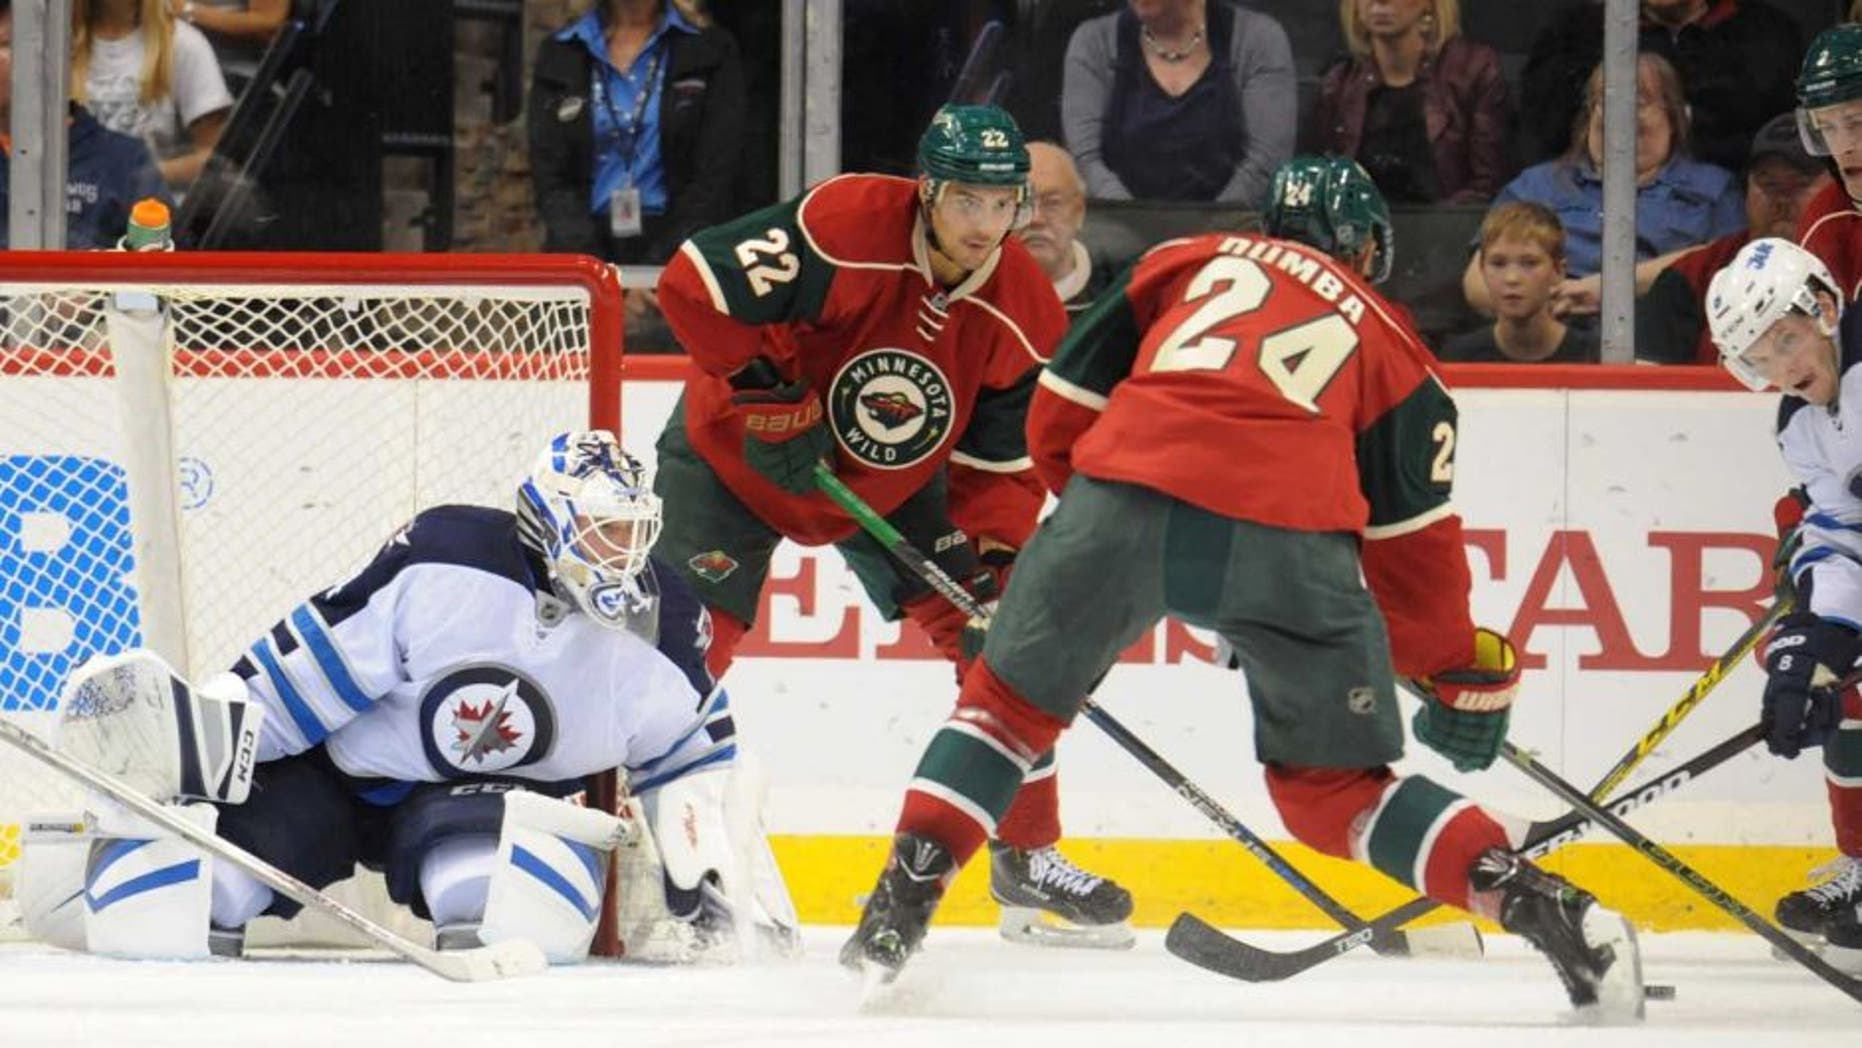 Minnesota Wild defenseman Matt Dumba shoots and scores on Winnipeg Jets goalie Michael Hutchinson during the first period of a preseason game at Xcel Energy Center in St. Paul, Minn., on Sunday, Sept. 27, 2015.